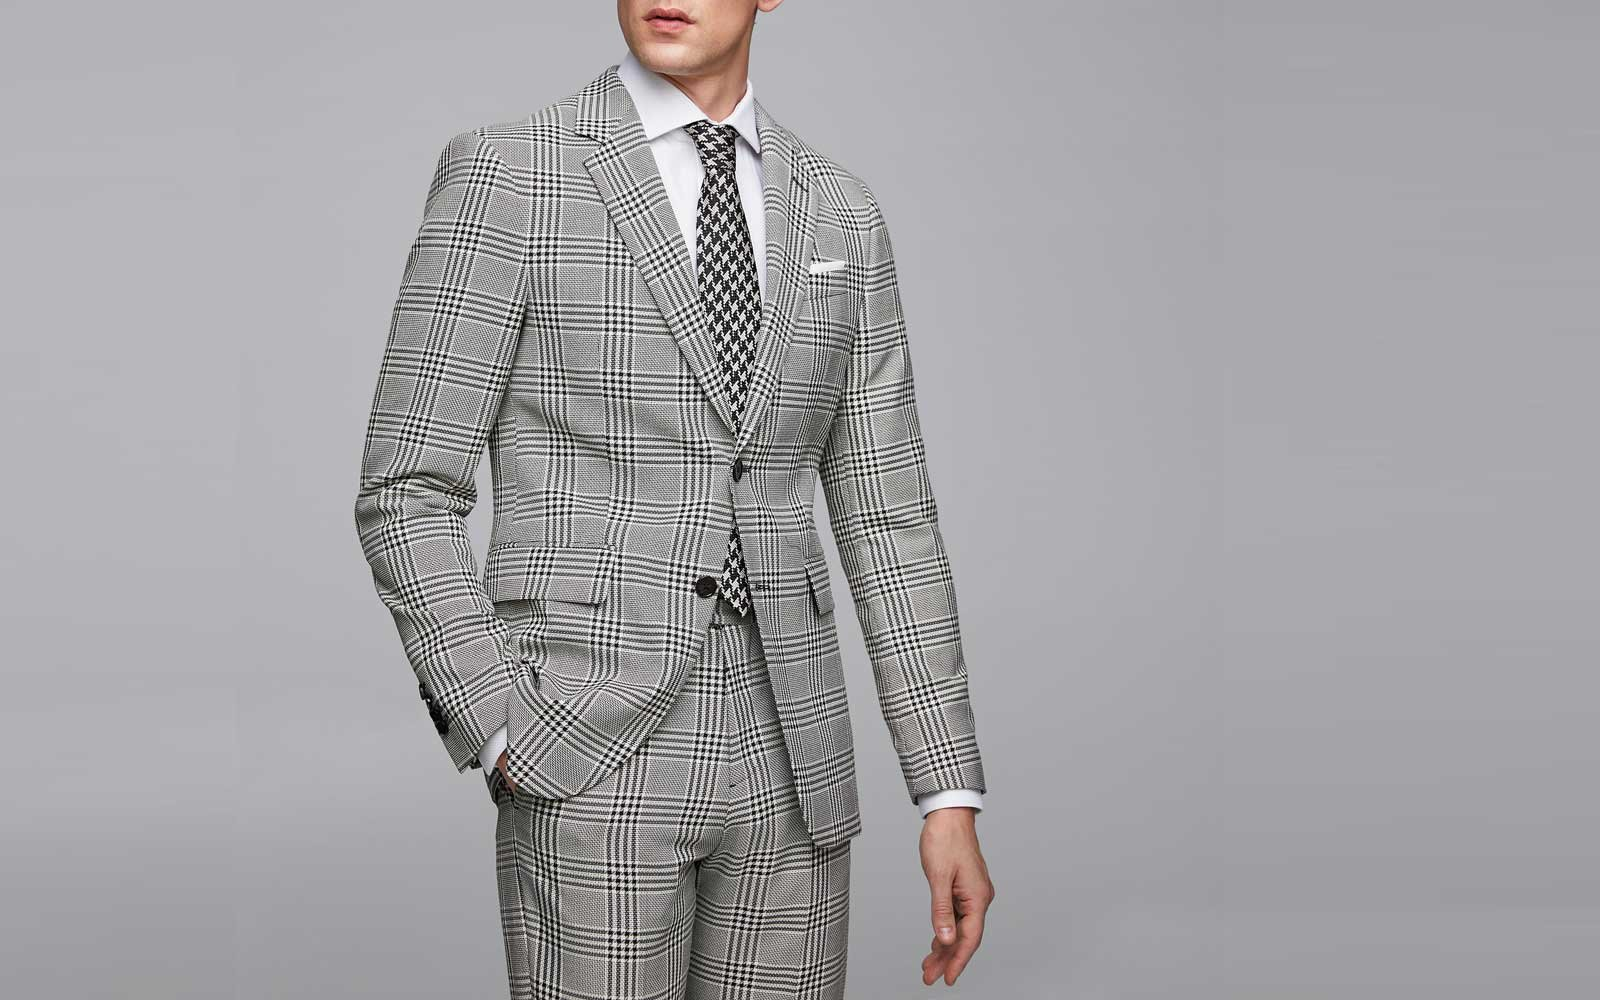 Zara travel suit